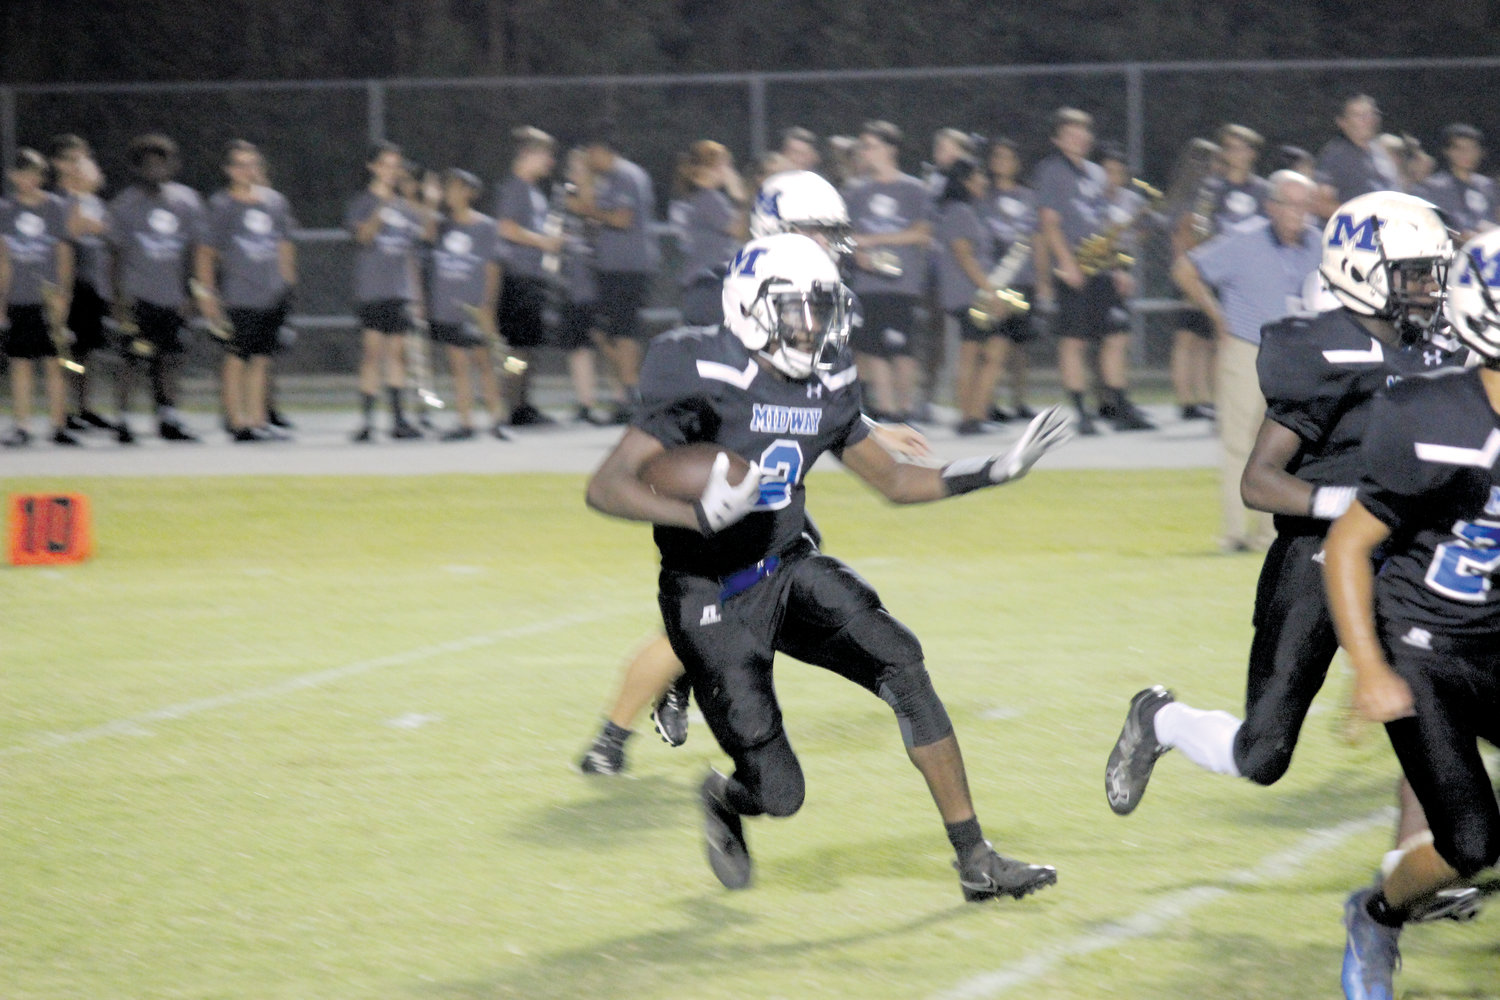 Dante Blue runs behind his blockers on Monday night. Blue had the lone score for Midway, a 92-yard reception on a screen pass.